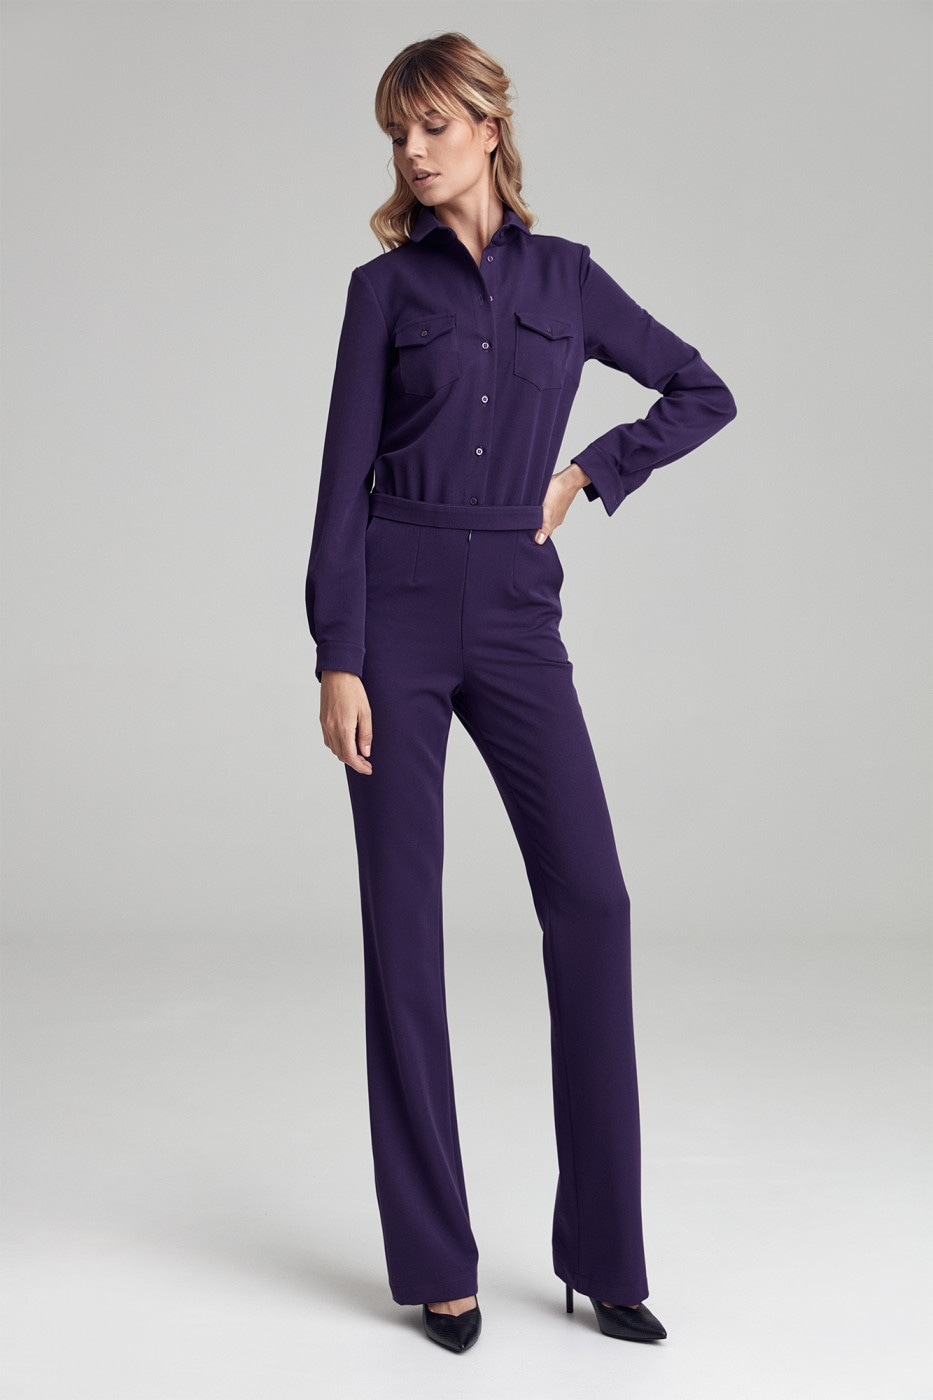 Colett Woman's Overall Ckm06 Violet